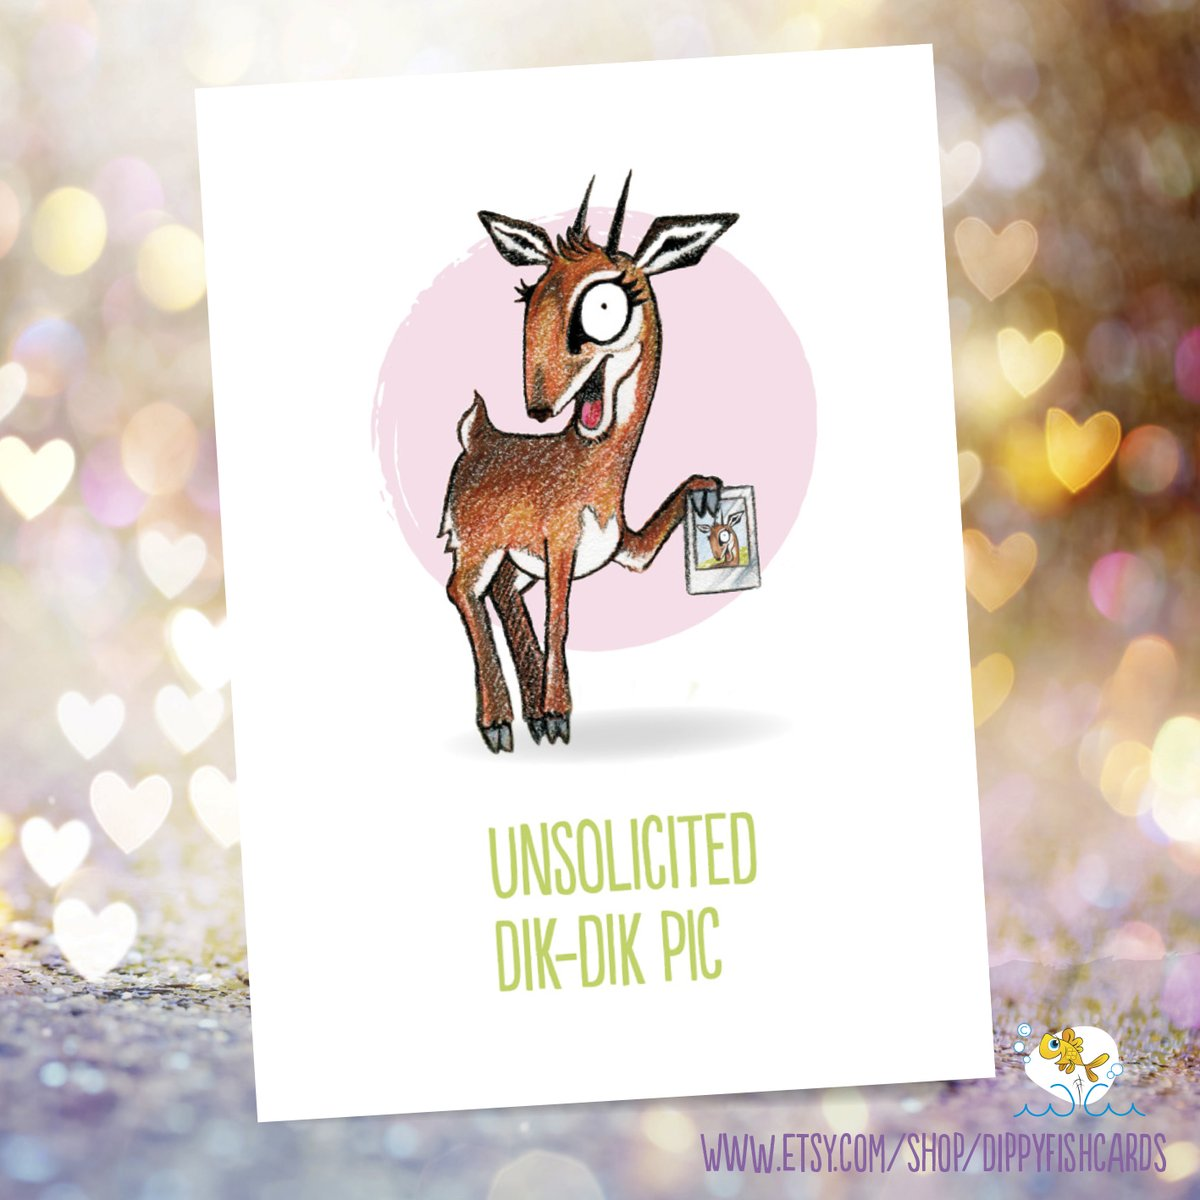 It's the week before Valentine's day. I should be campaigning mercilessly for you to all buy my cards for your beloveds (crushes/mates). But I'm knackered. Do me a solid & RT wouldya? God, I am lazy AF! (SOZ!) 😘 https://t.co/Mt1DRDKtiX #inbizhour #womaninbizhour #valentinesday https://t.co/OGvajypN2O